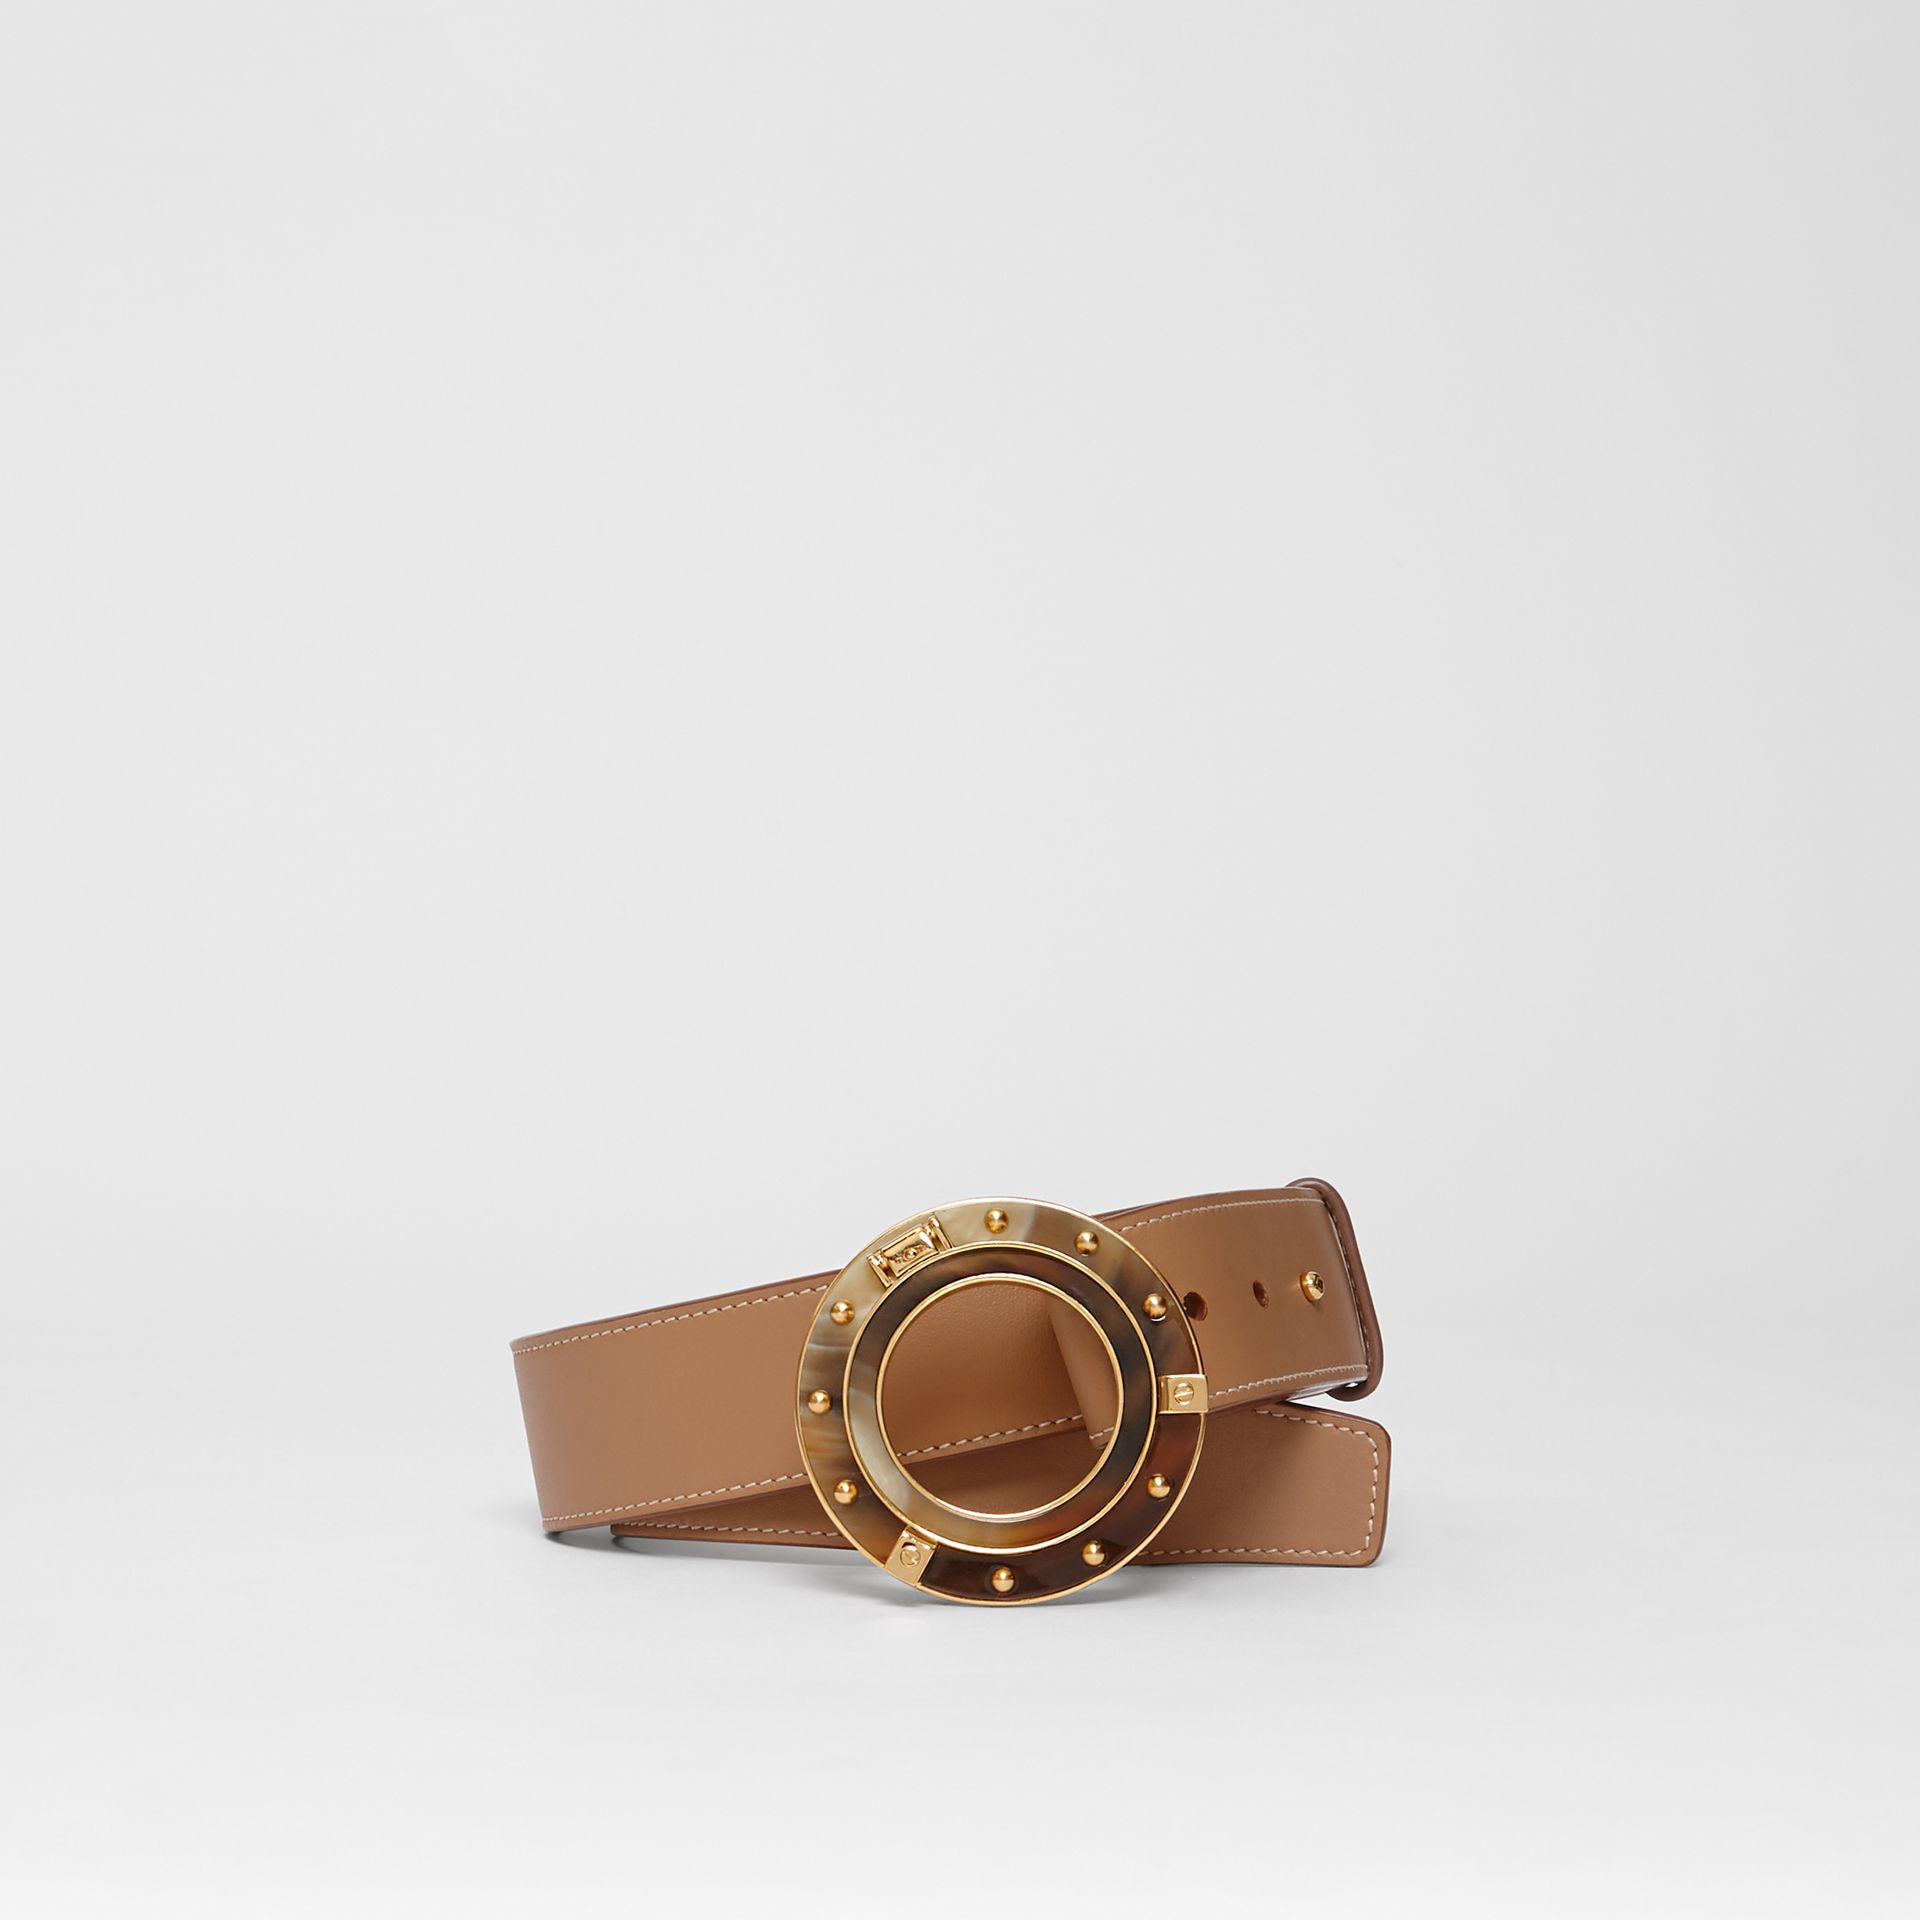 Porthole Buckle Leather Belt in Light Camel - Women | Burberry Australia - gallery image 0